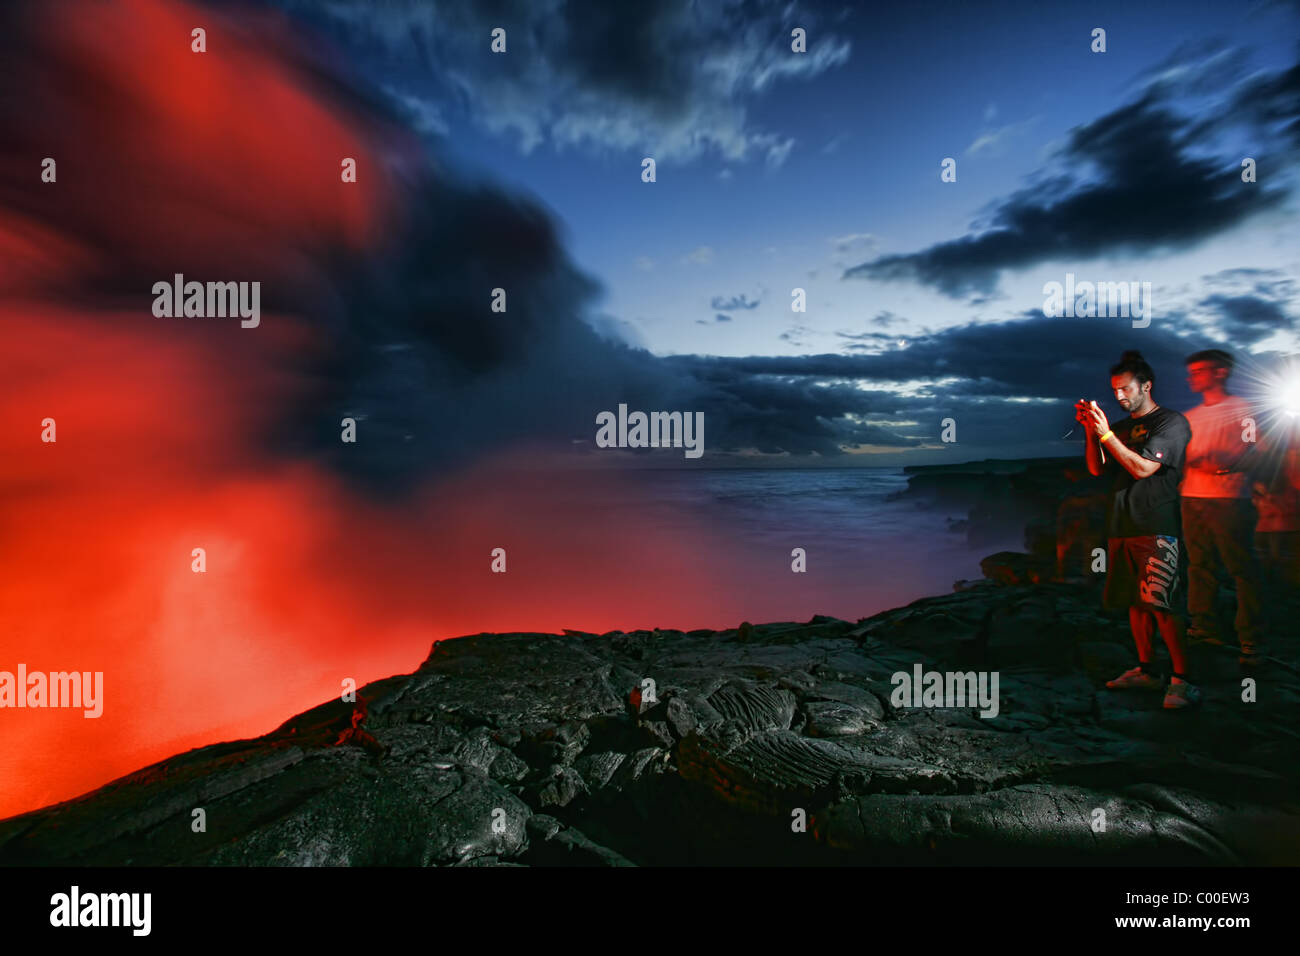 Tourists watching the Kilauea Lava flow on Hawaii's big island. - Stock Image